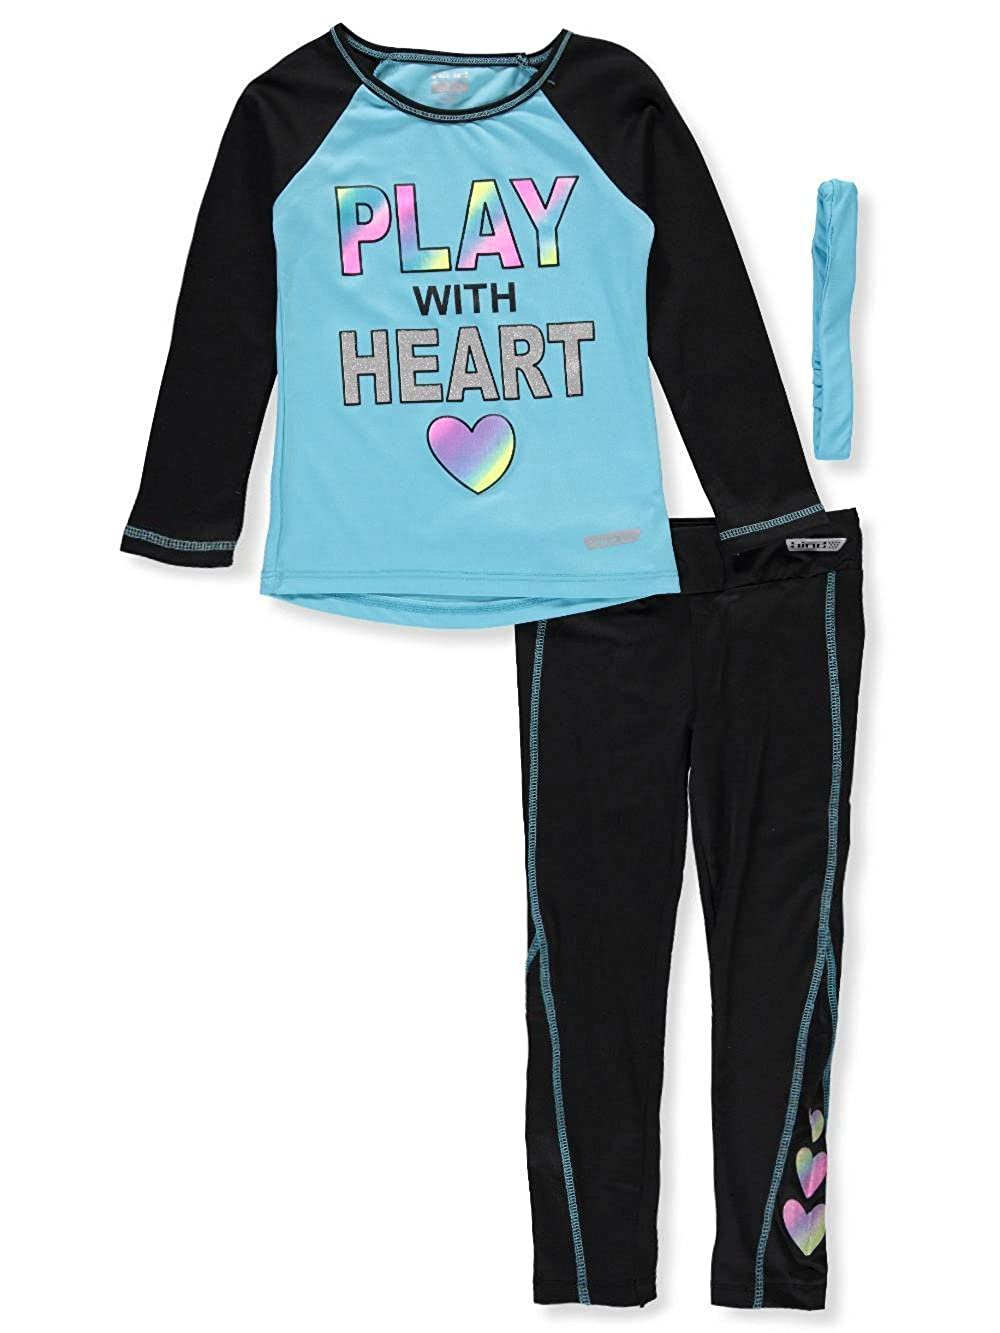 Hind Girls' 2-Piece Performance Leggings Set Outfit with Headband